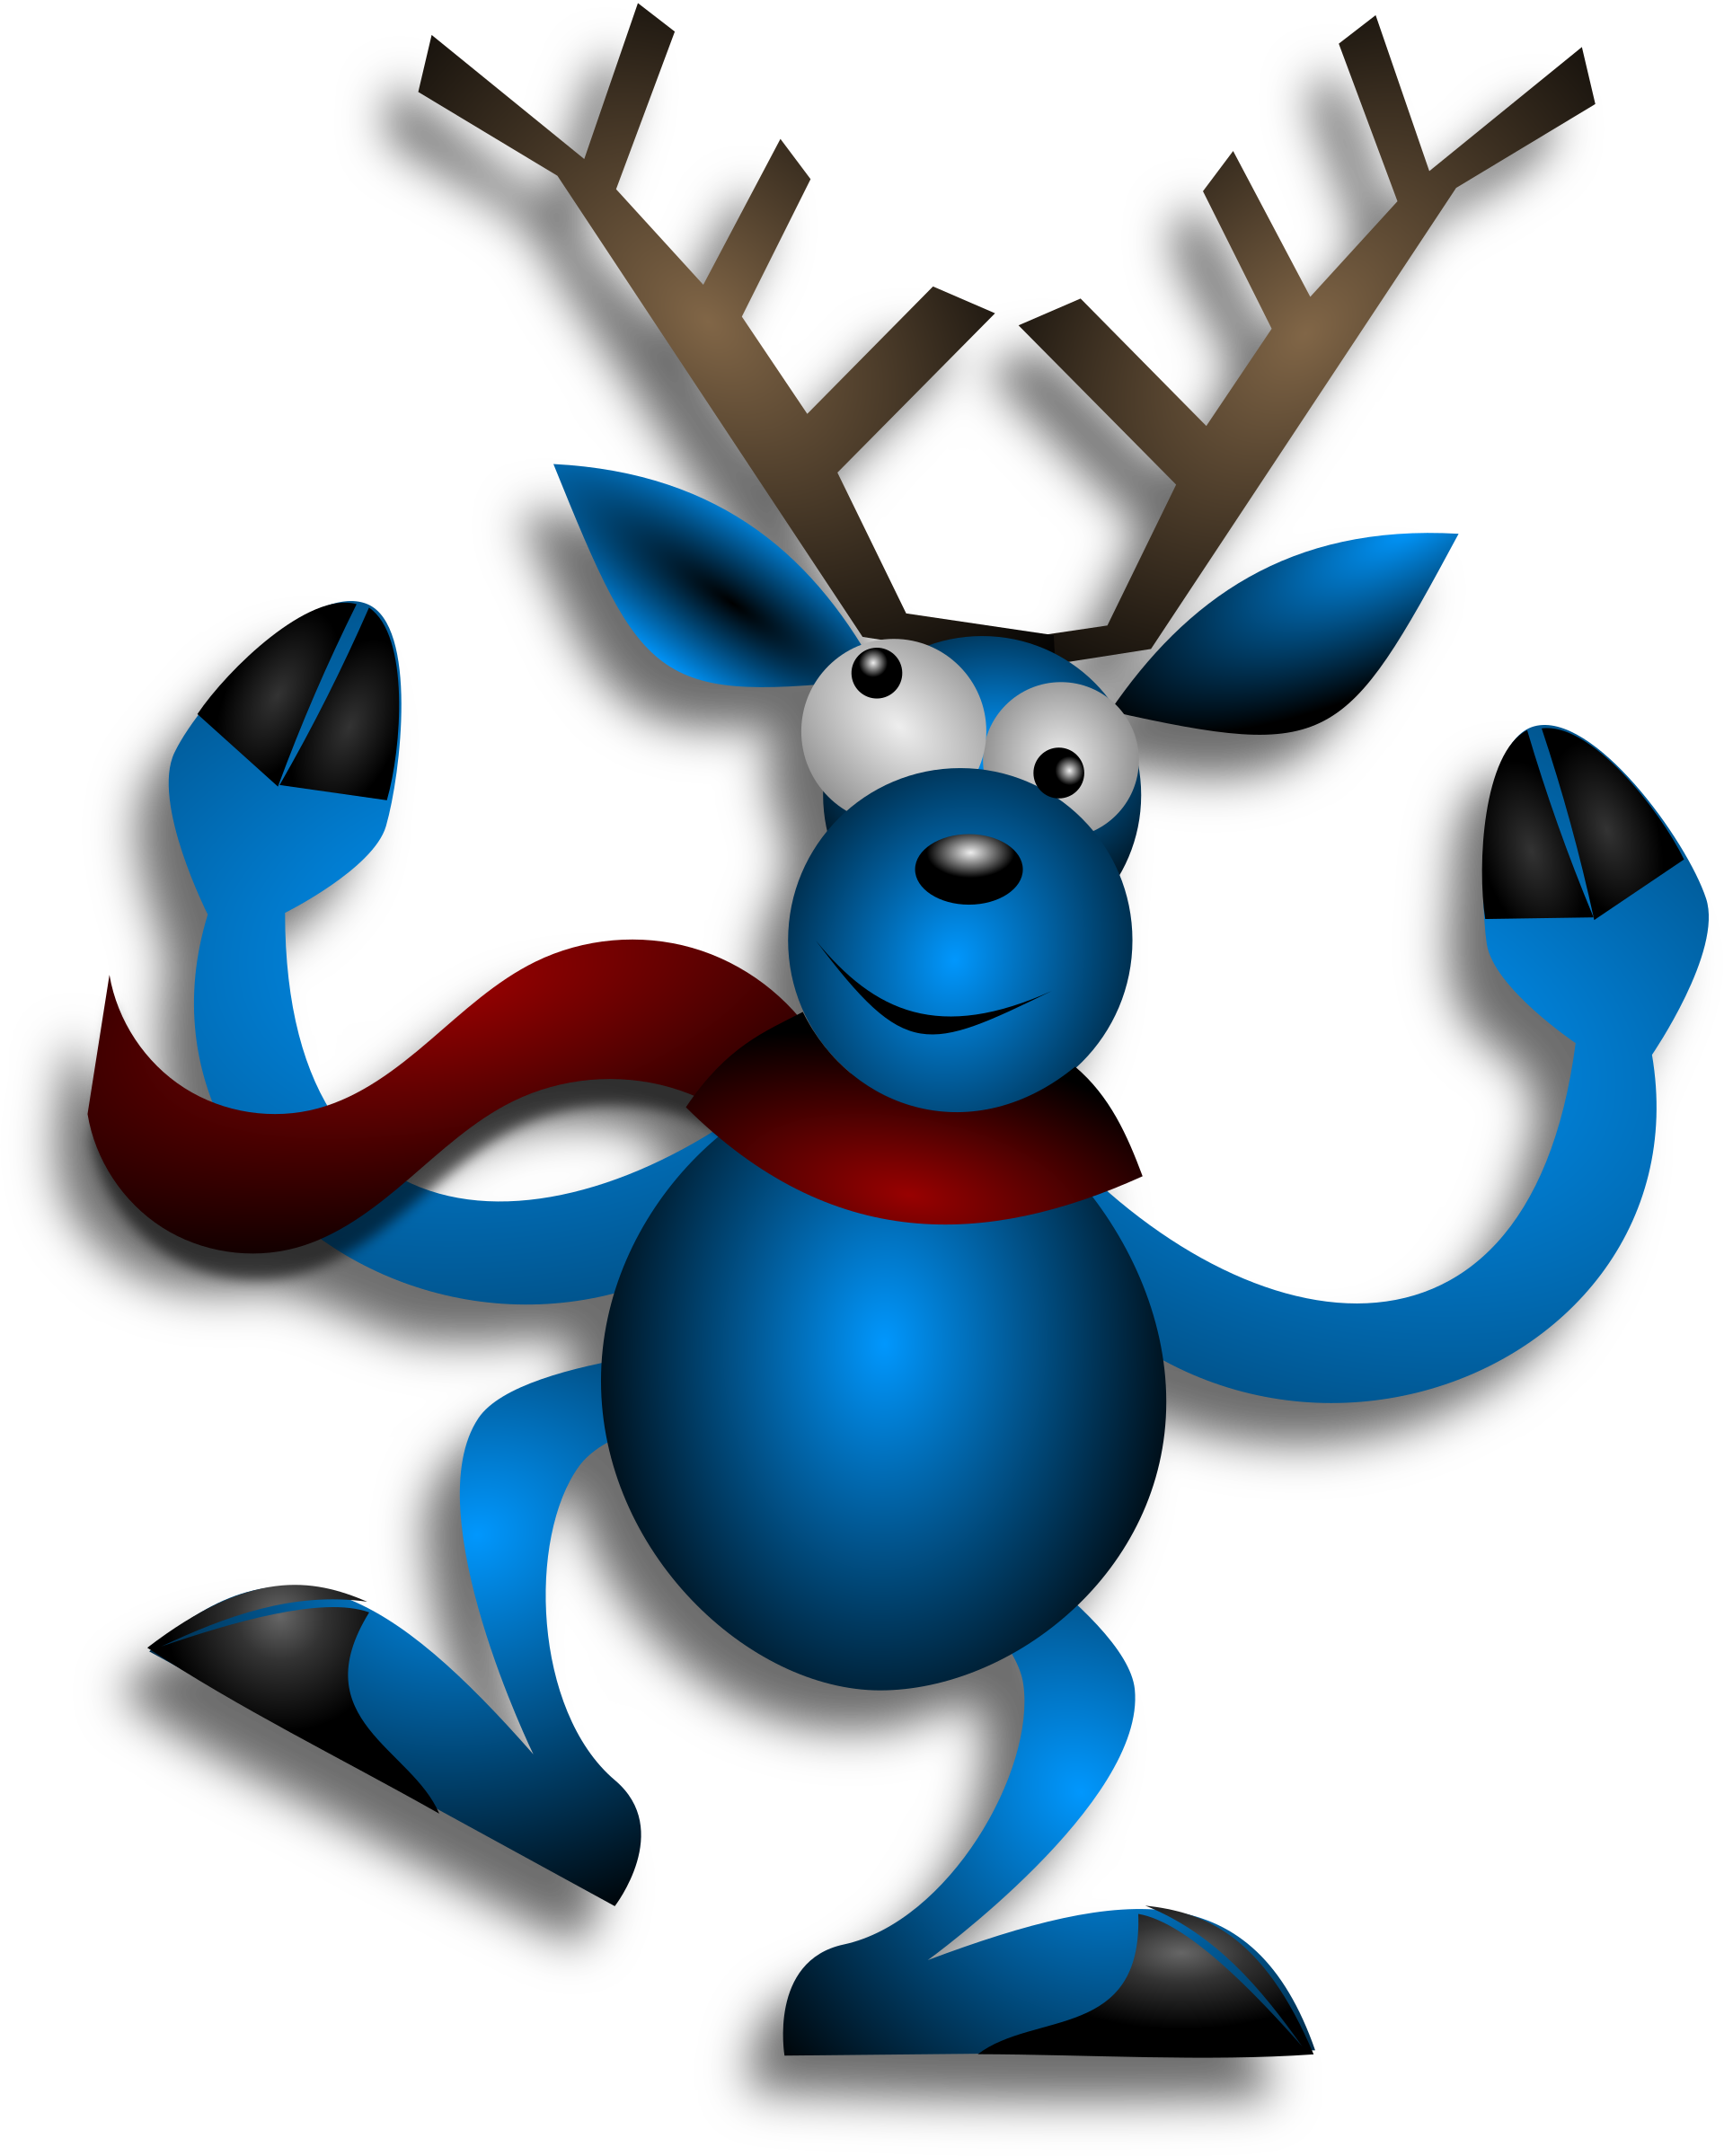 Dancing Reindeer 3 by Merlin2525